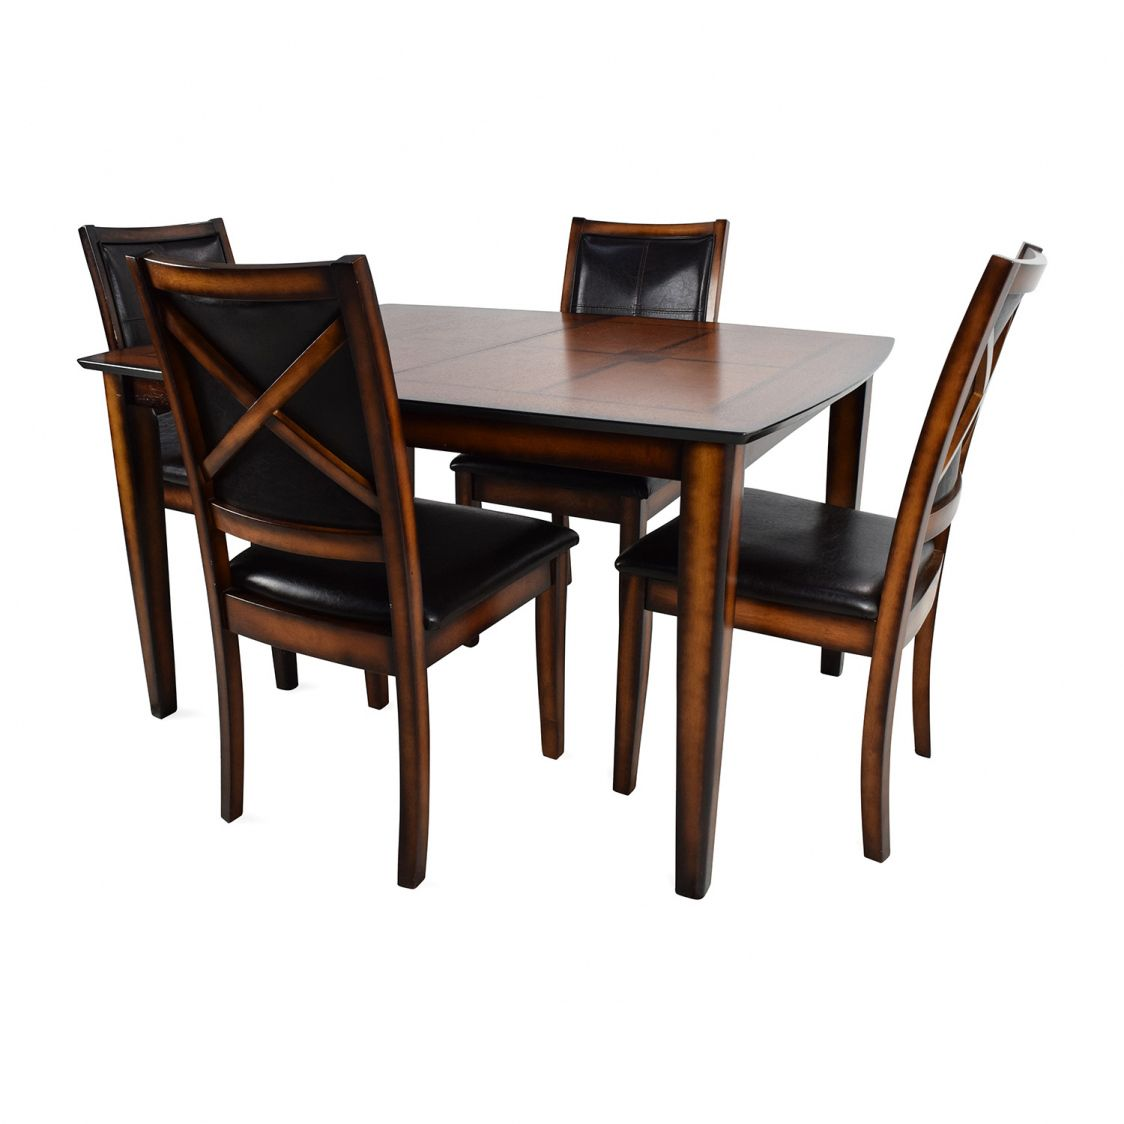 Bon Dining Room Chairs Denver   Cool Storage Furniture Check More At  Http://1pureedm